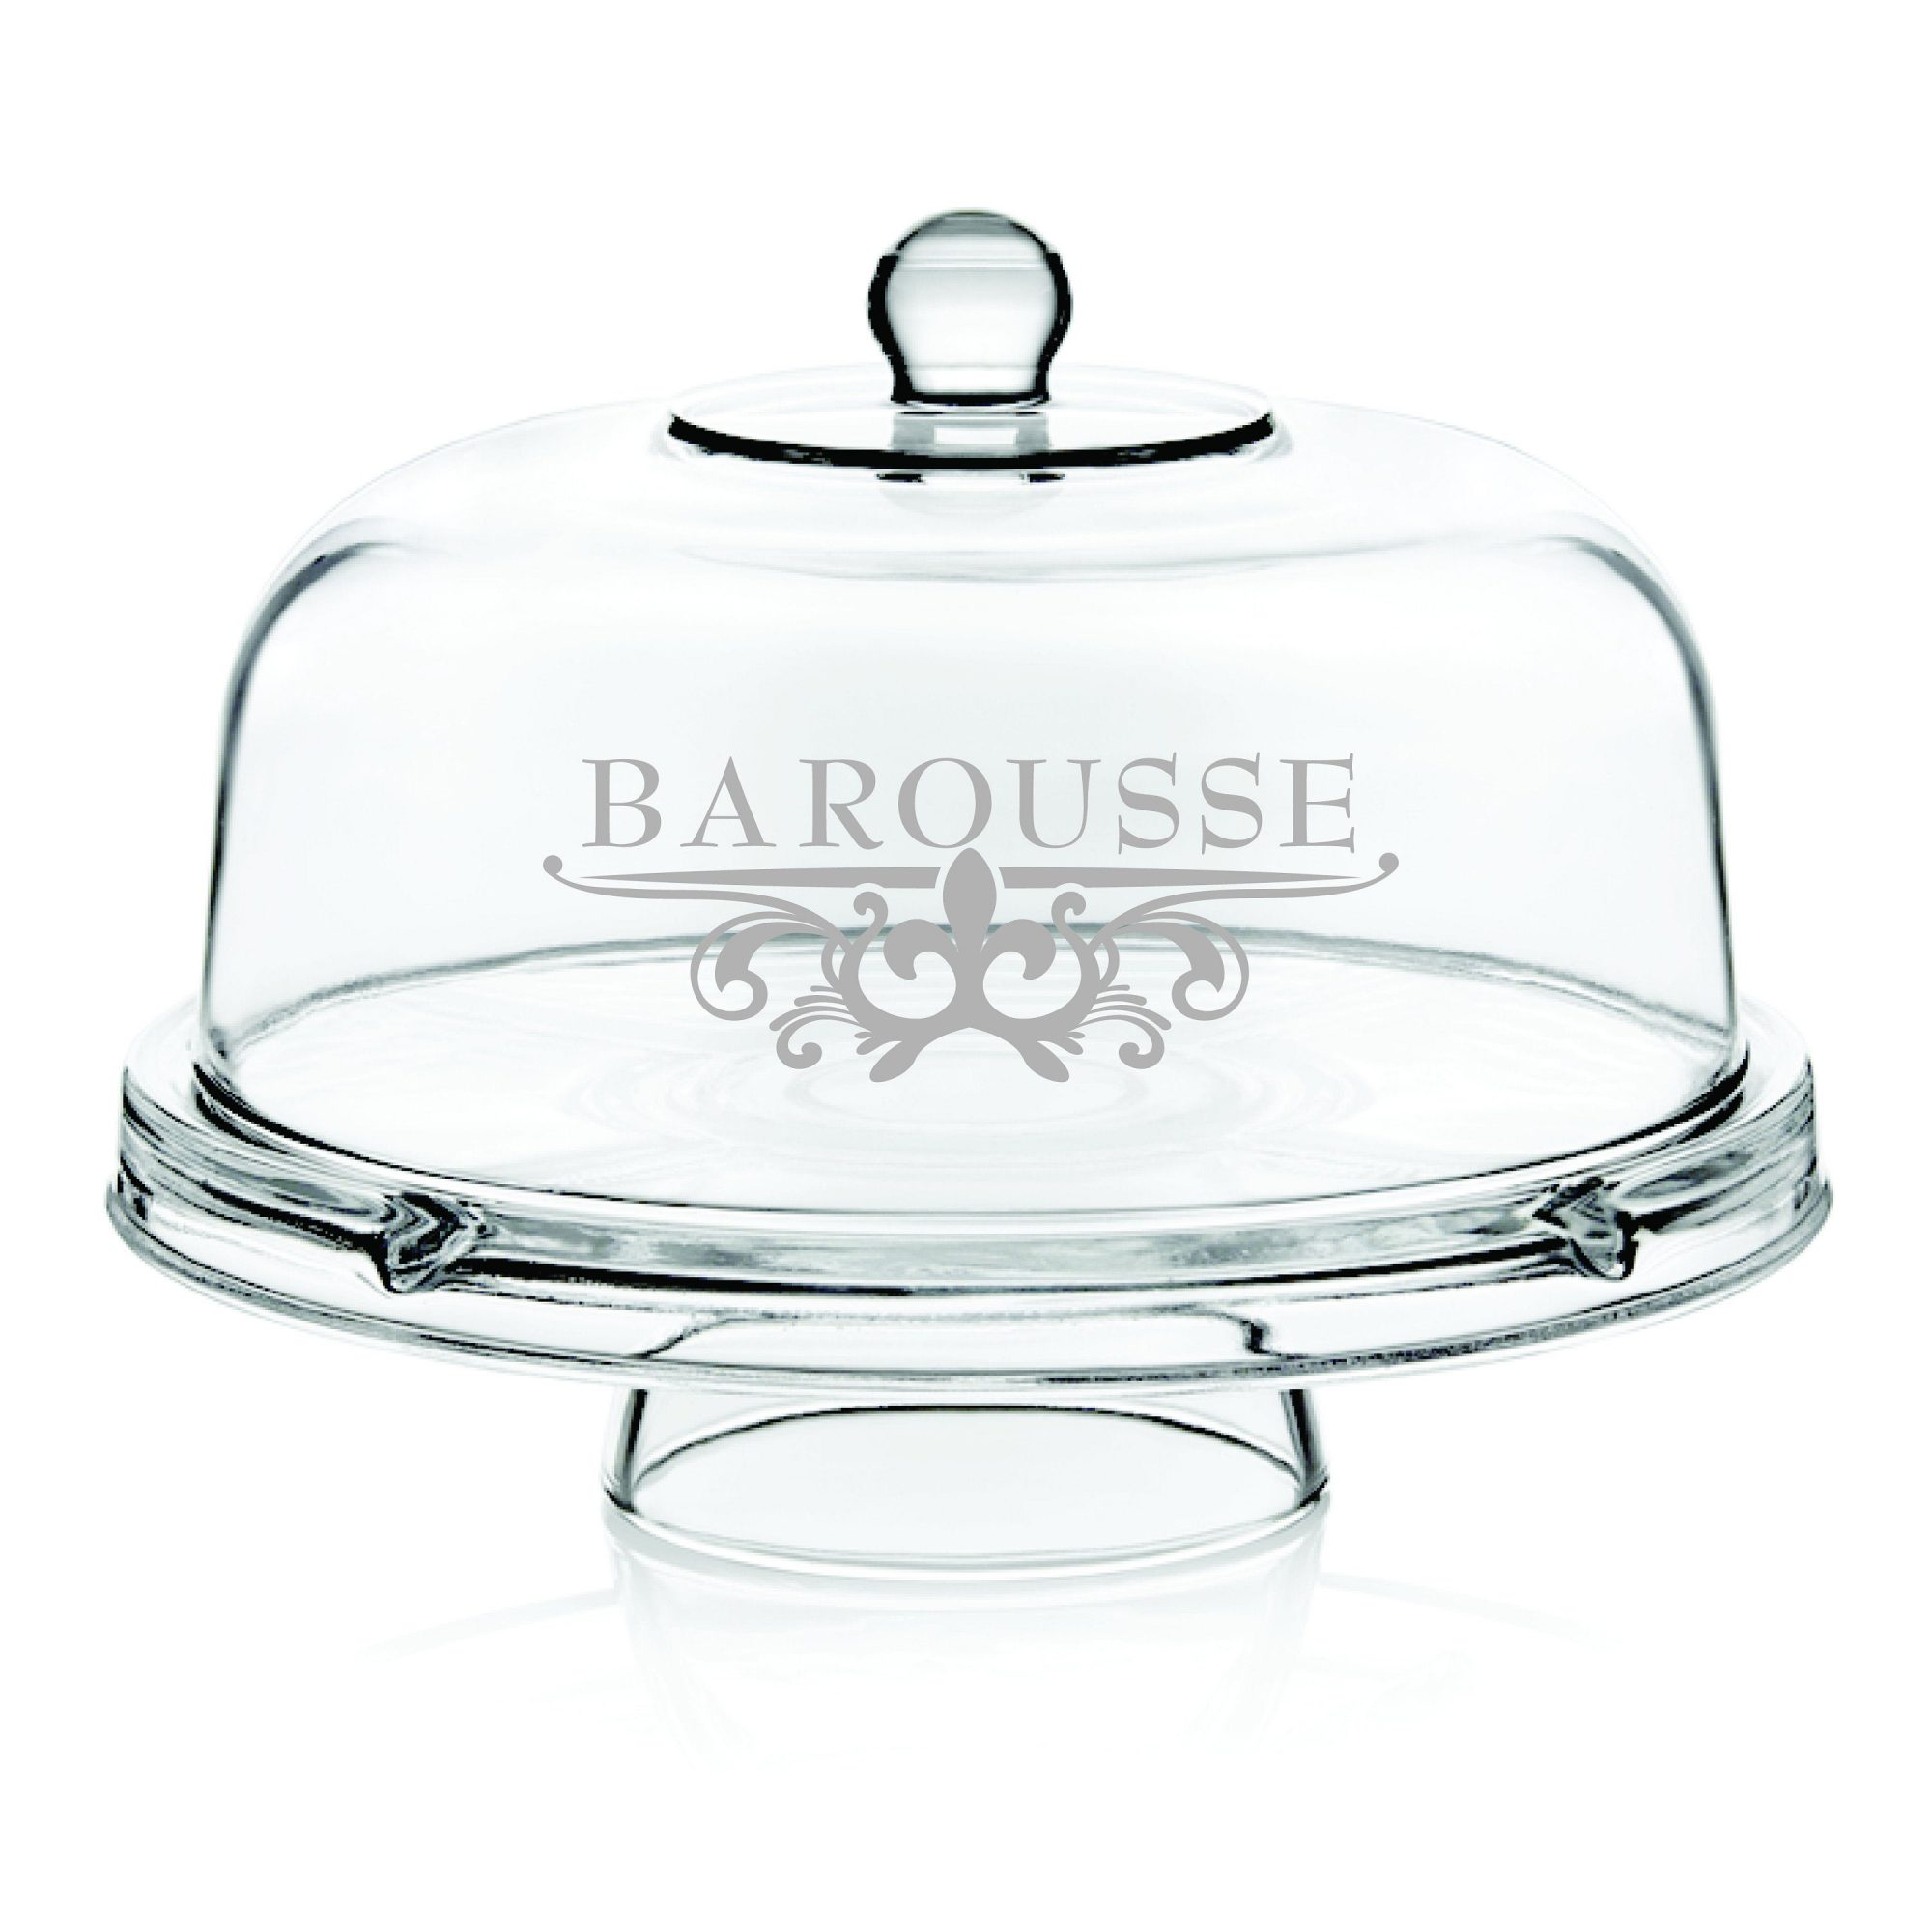 Etched Glass Cake Dome